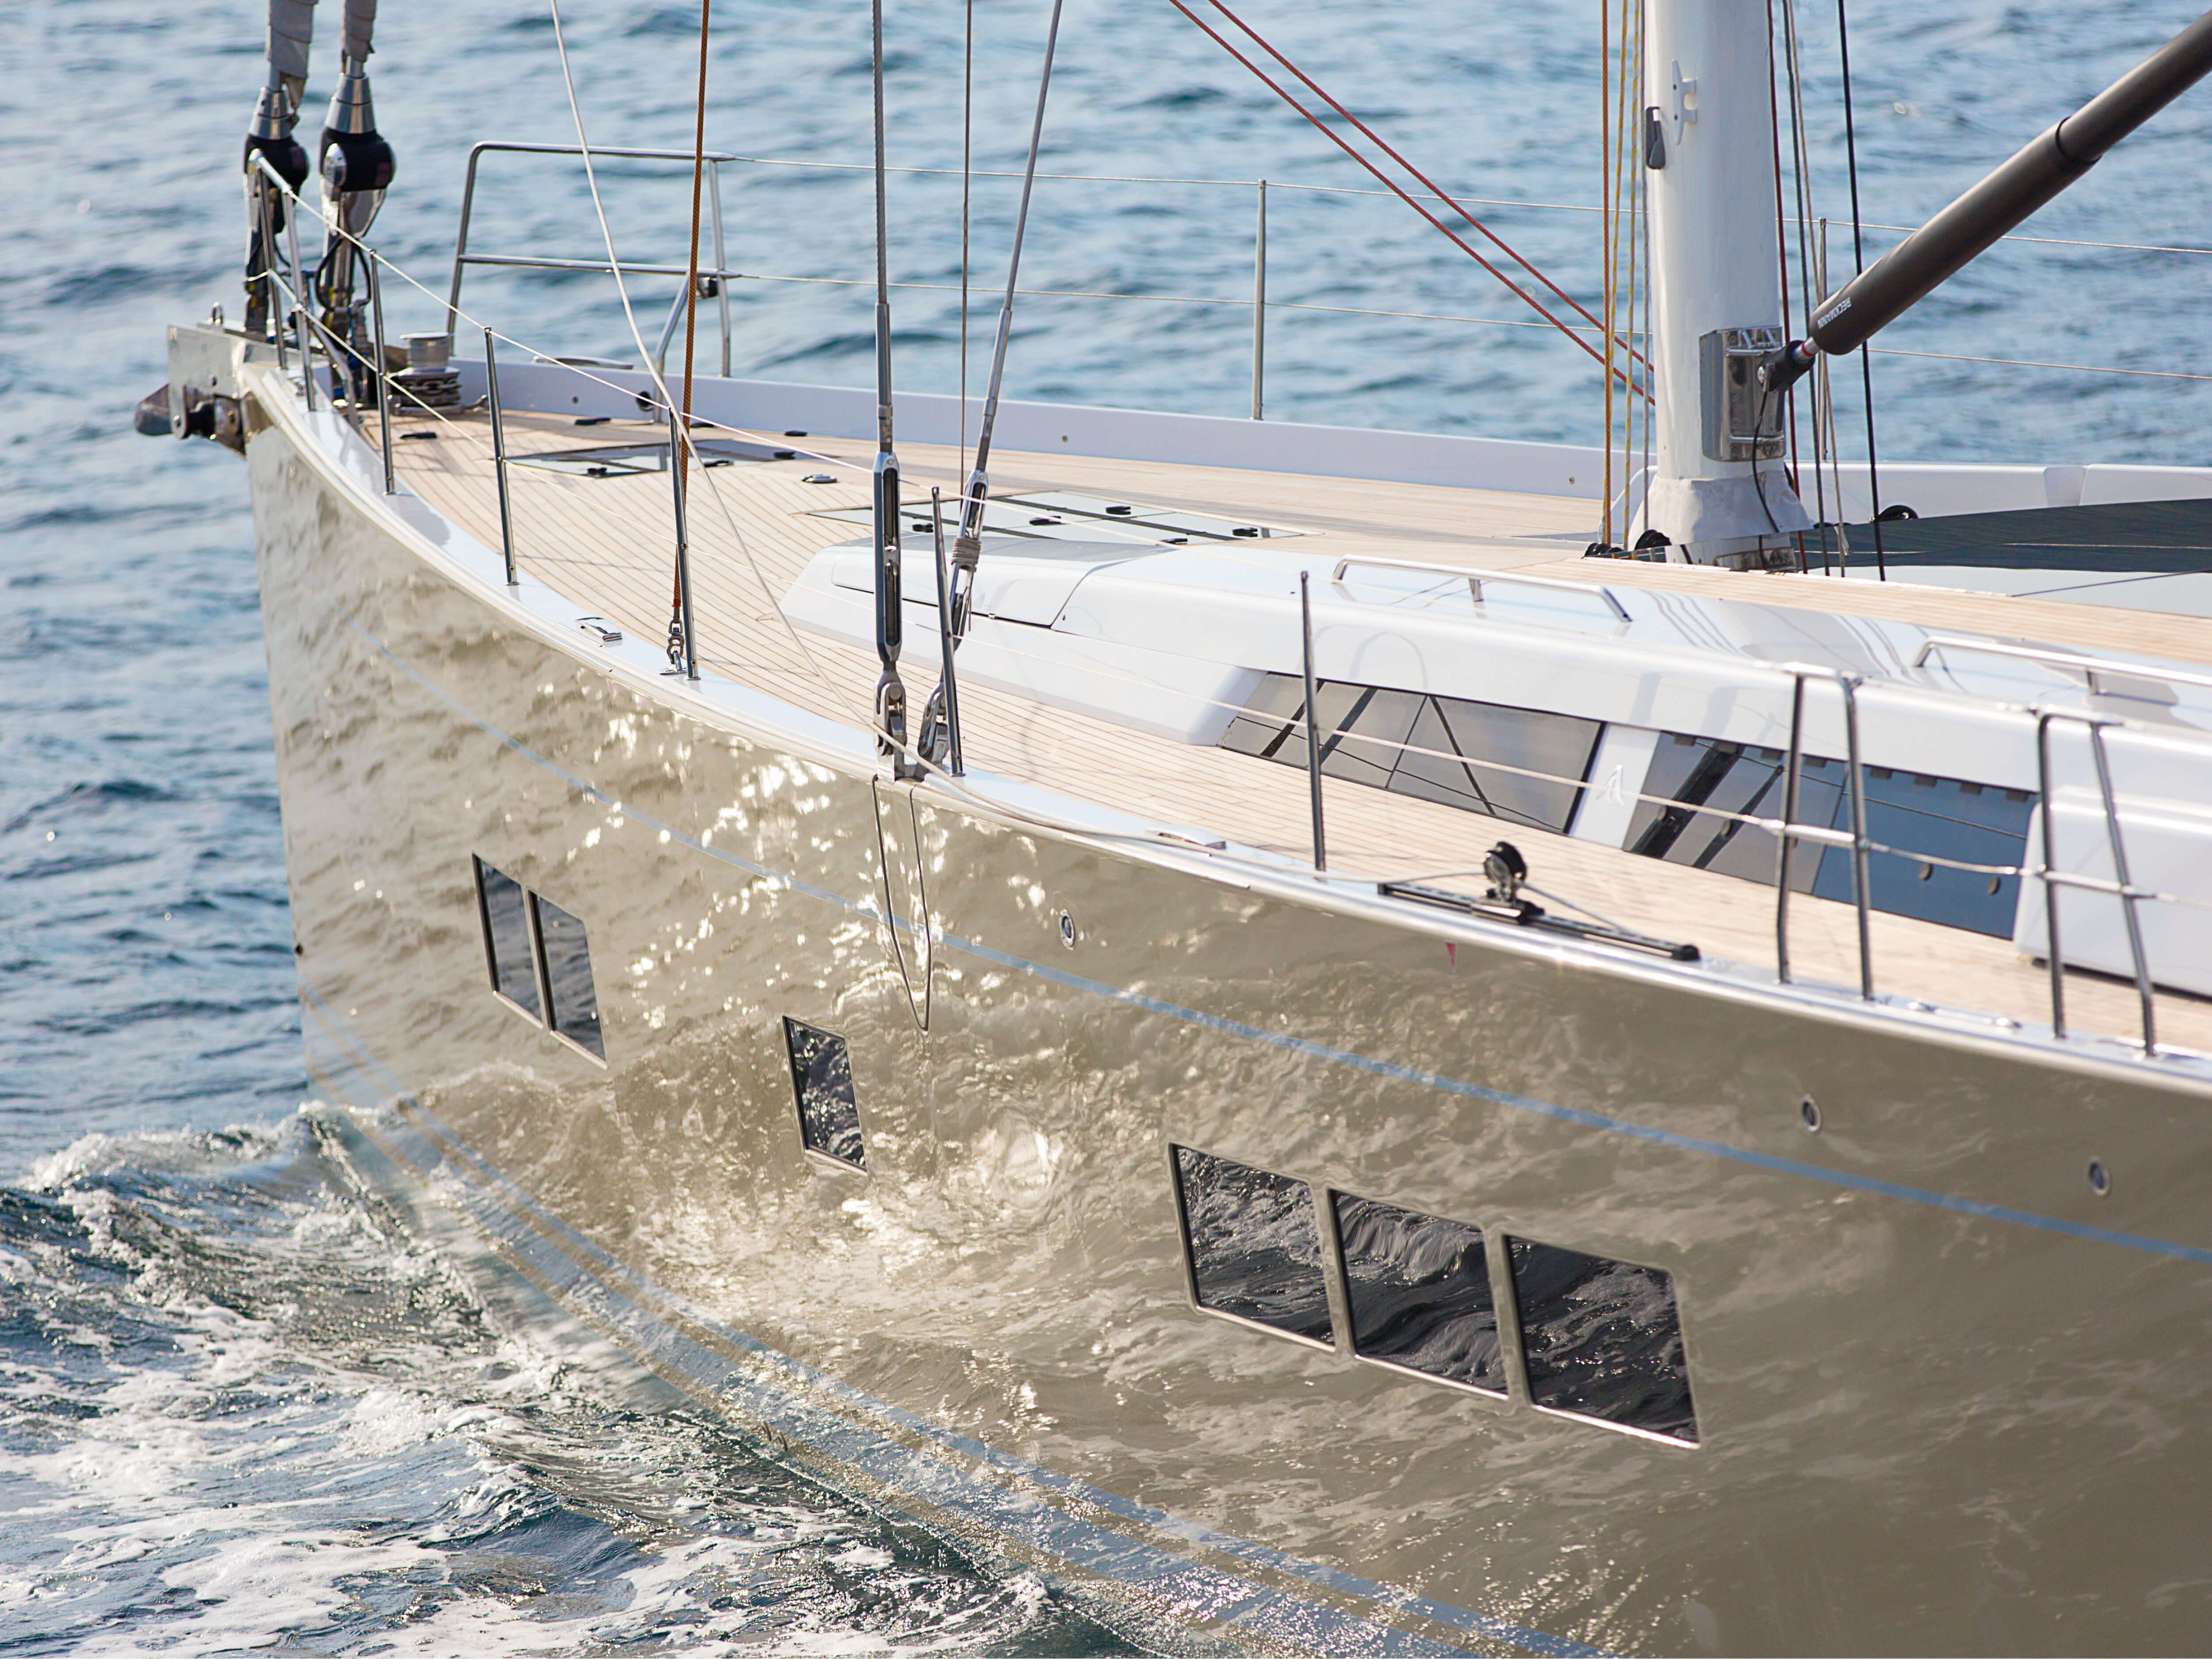 Hanse 675 | teak deck, deck hatches, mast with lines | Hanse